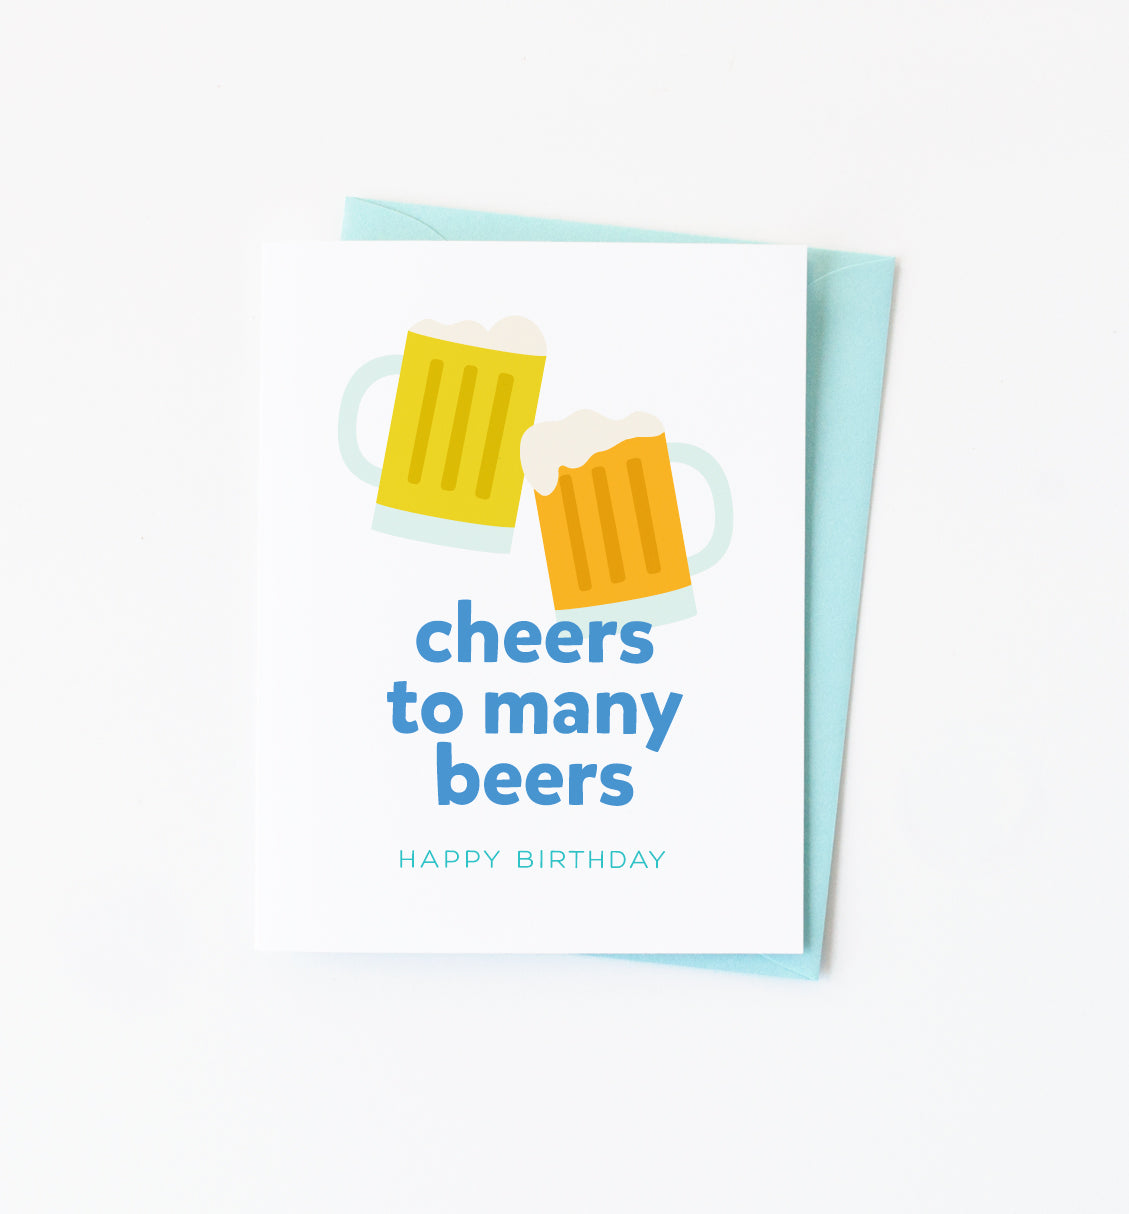 Many Beers card